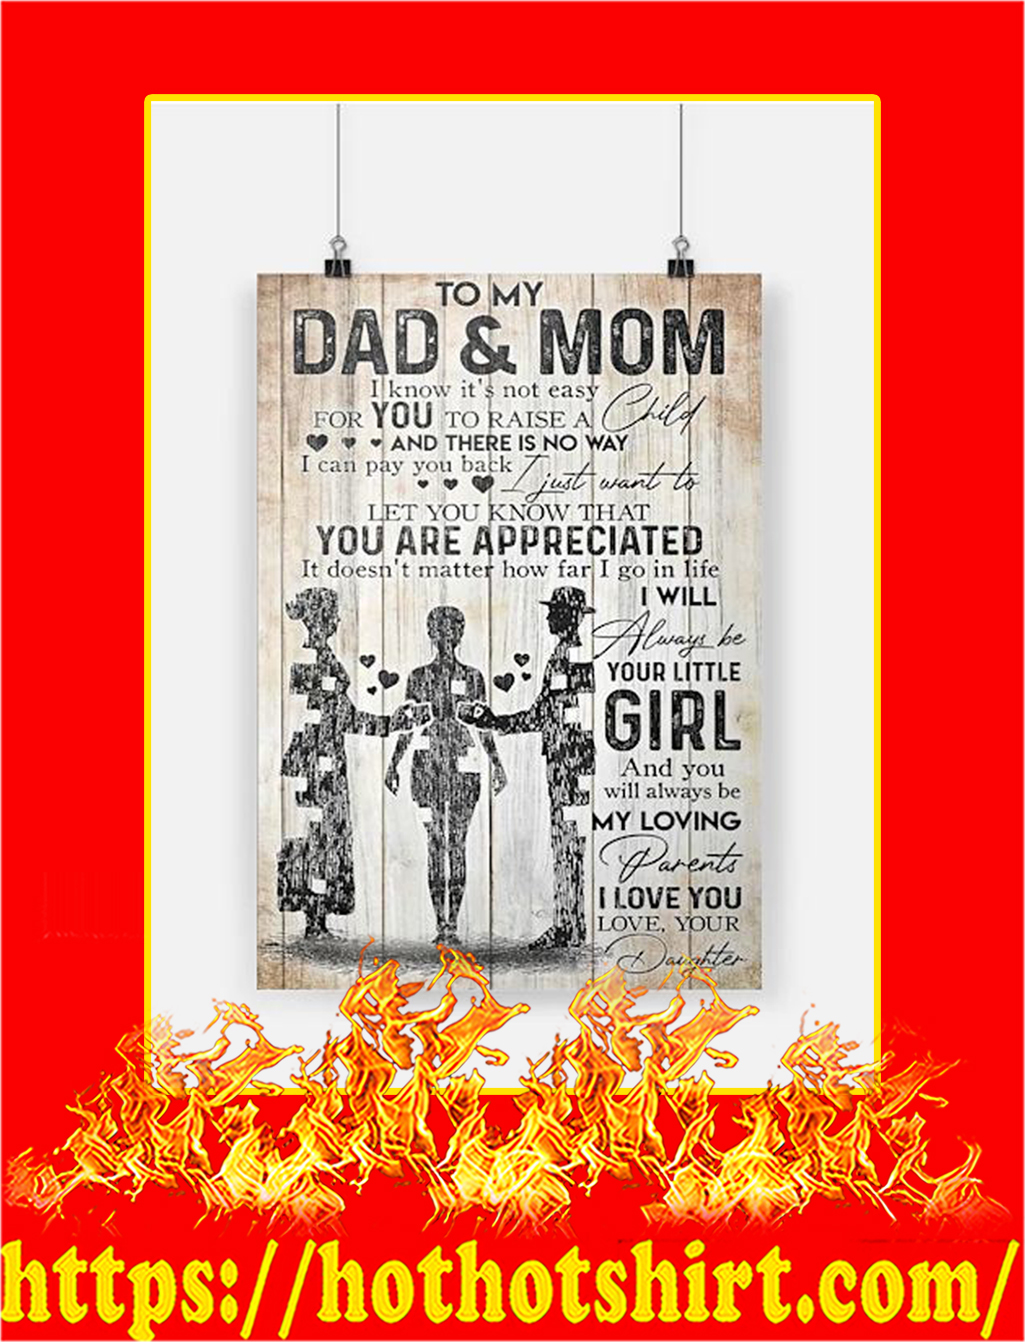 To My Dad And Mom Daughter Poster - A4